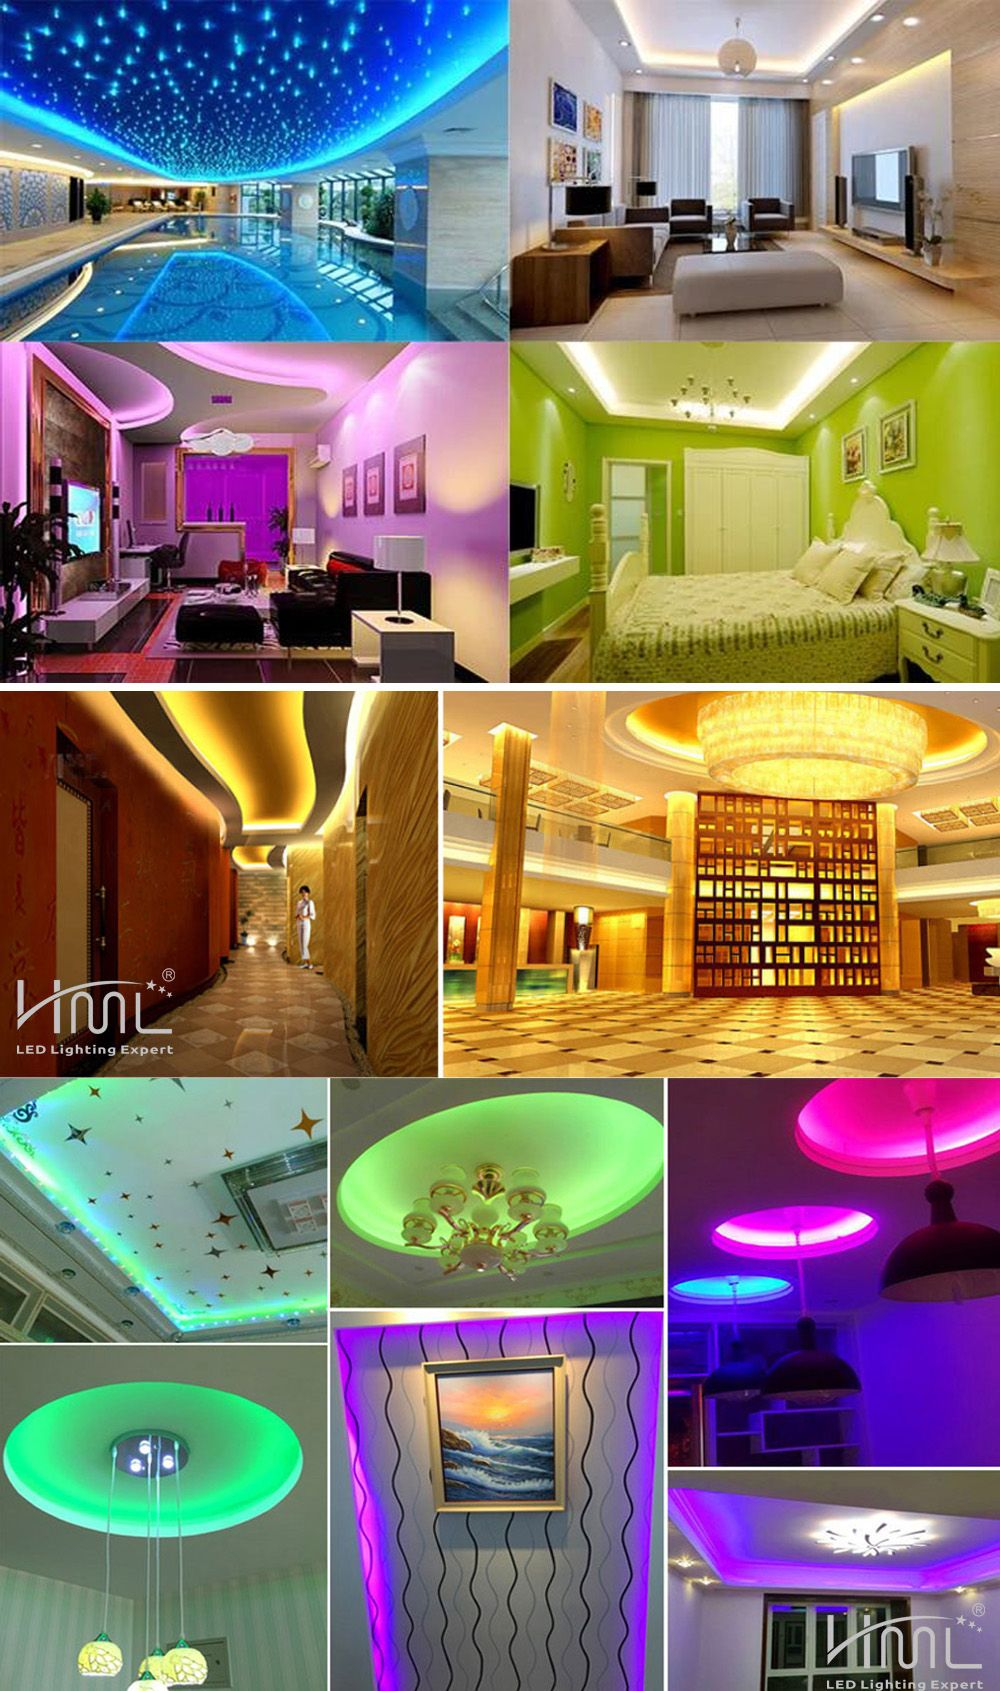 HML 2pcs 5M 24W RGB 2835 300 LED Strip Light - RGB with IR 20 Keys Music Remote Control and US Adapter